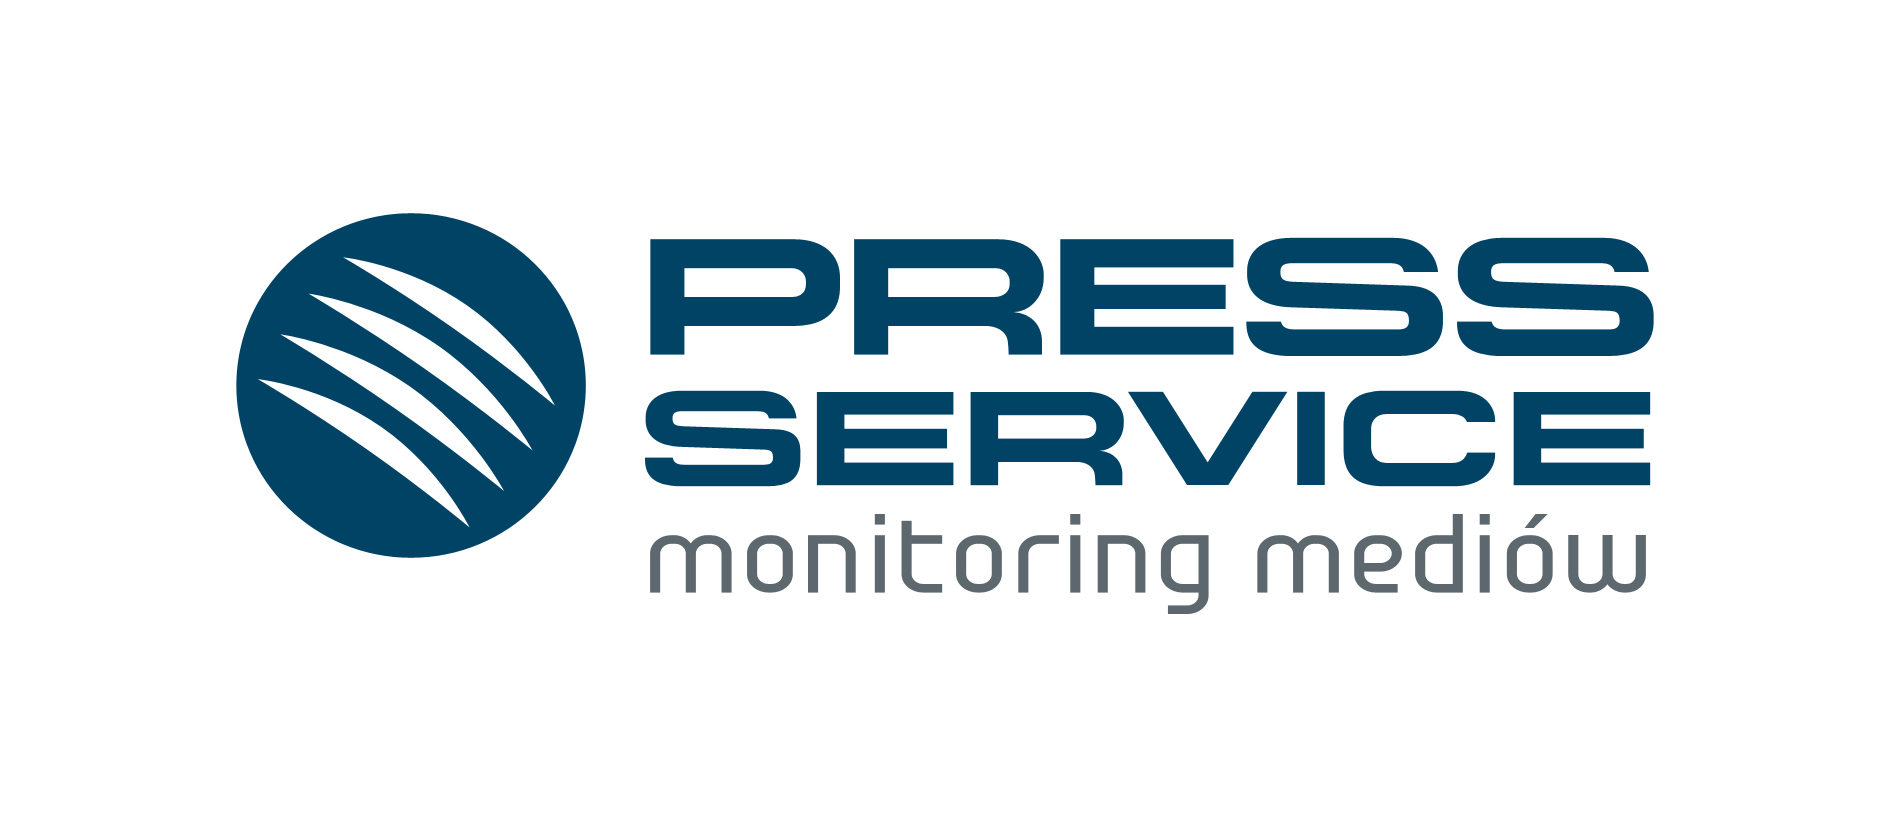 Press Service monitoring mediów